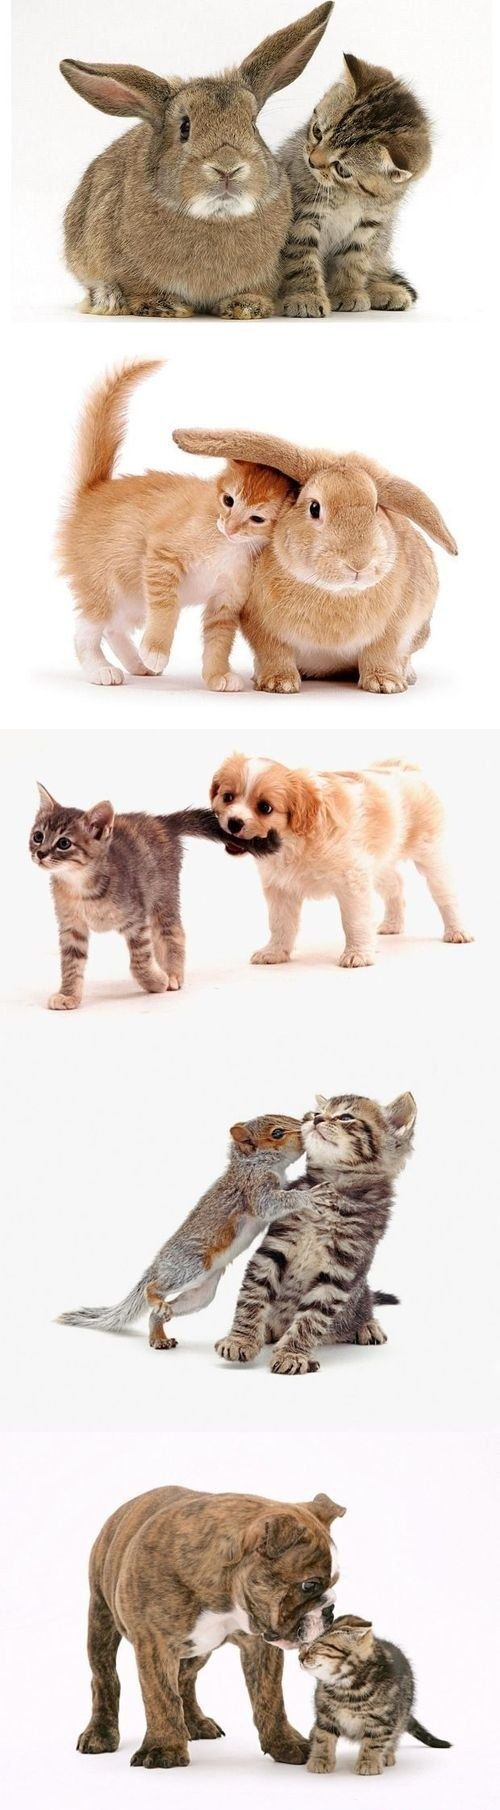 Here is todays cute animal overload awesomely cute cute kittens